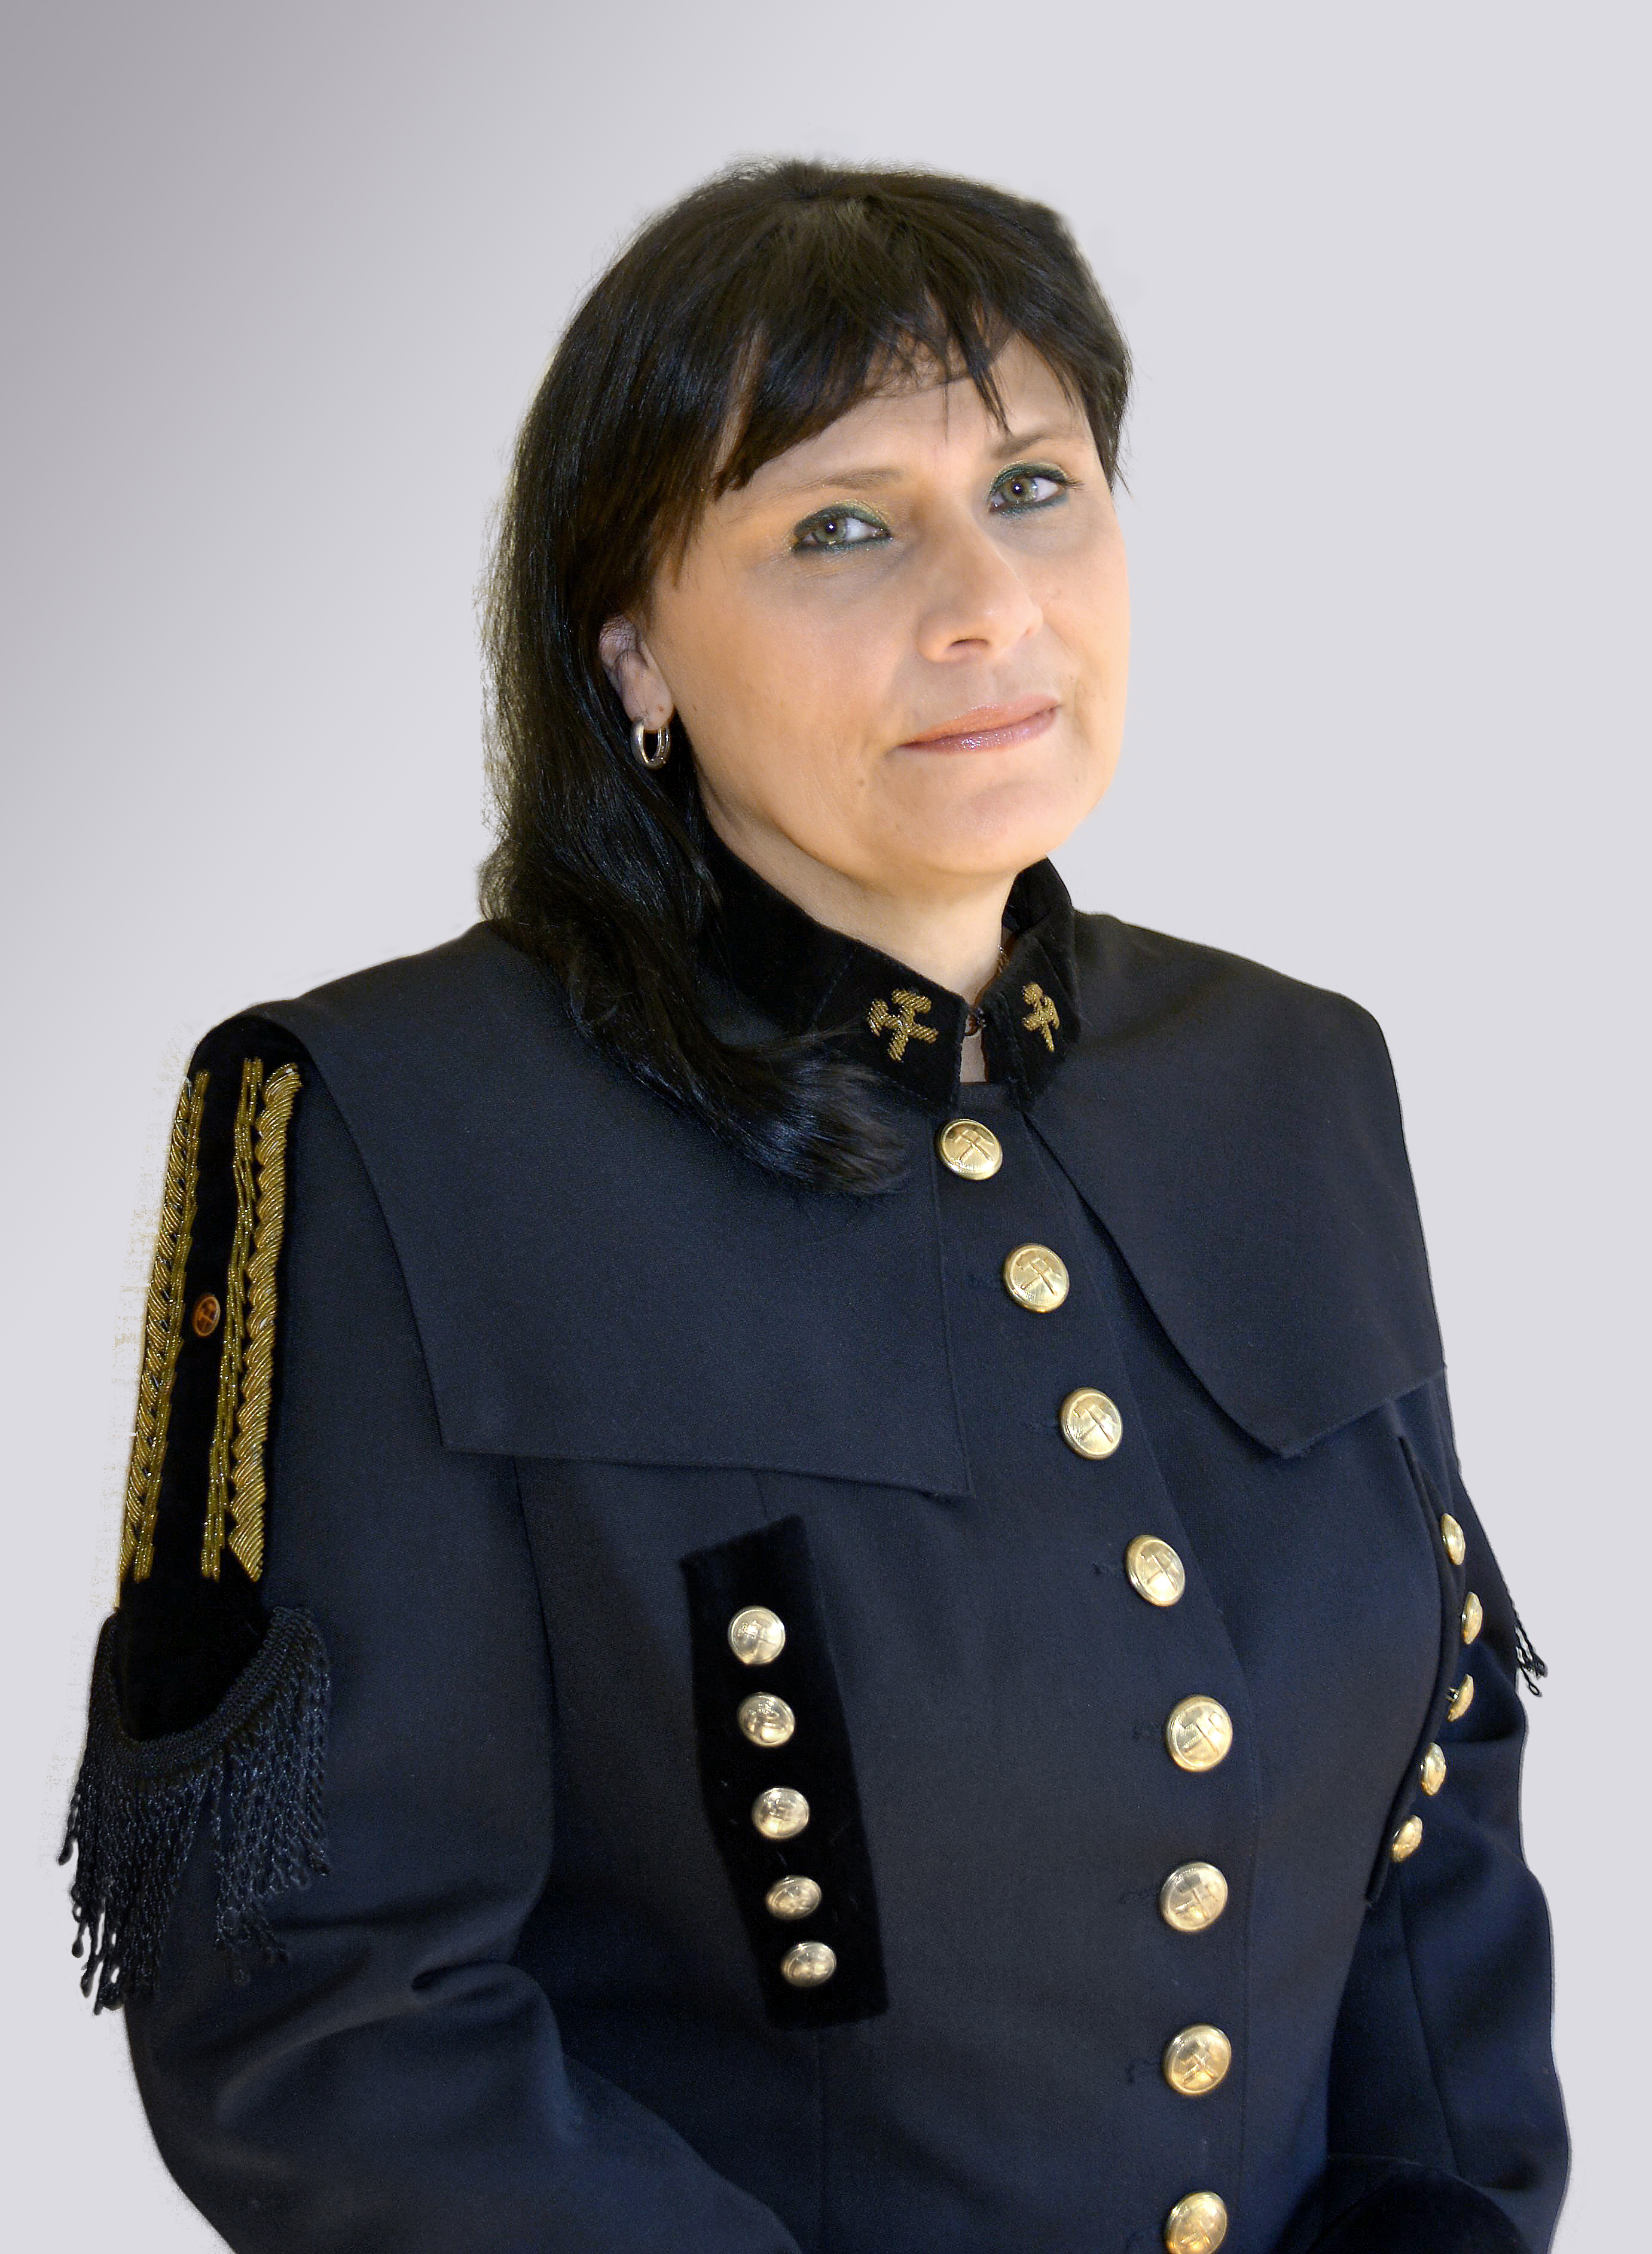 Director General of the State Mining Authority - Mrs Krystyna Samek-Skwara